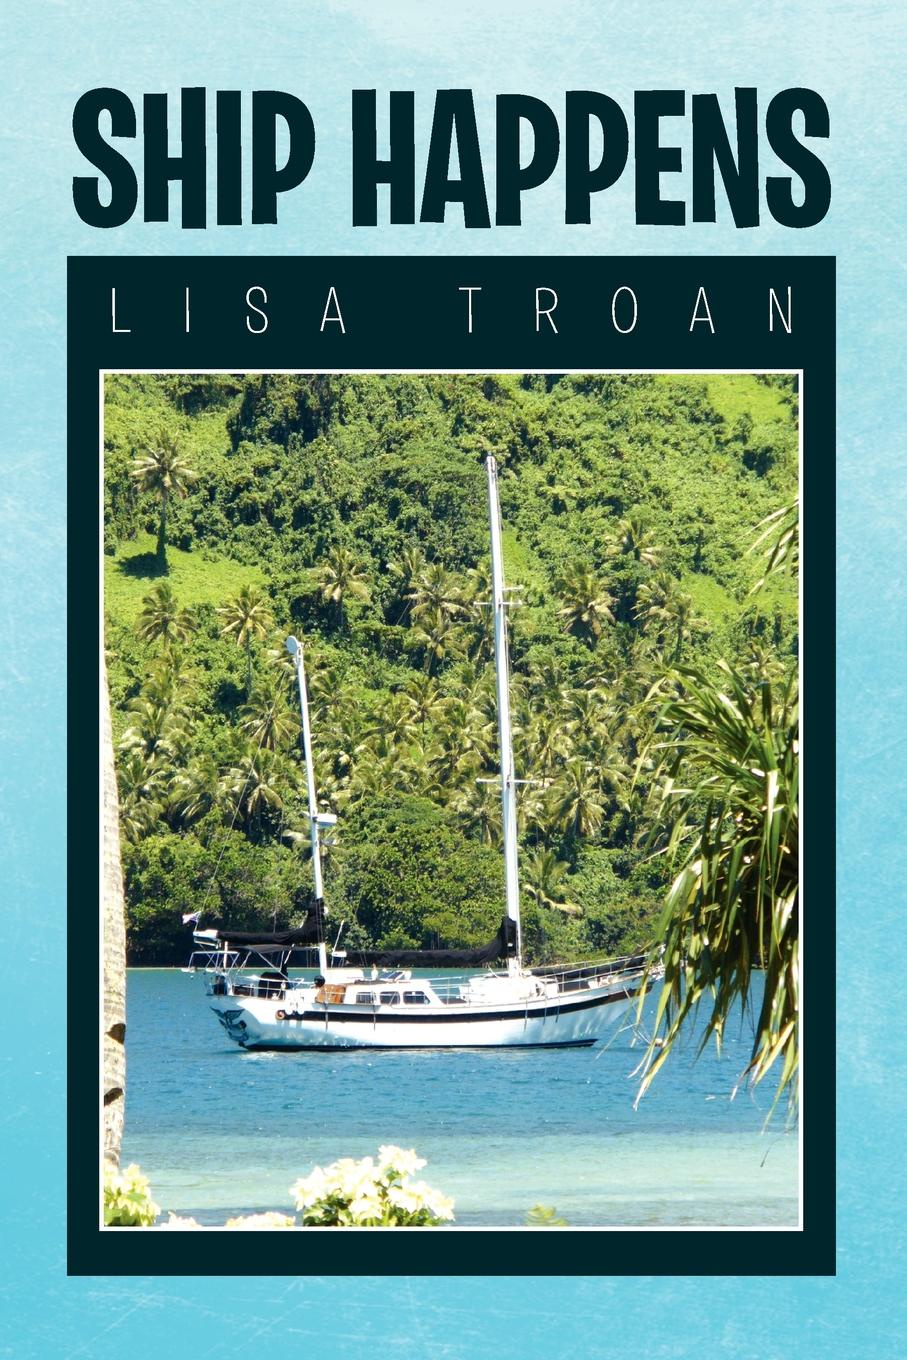 Troan Lisa Troan, Ship Happens